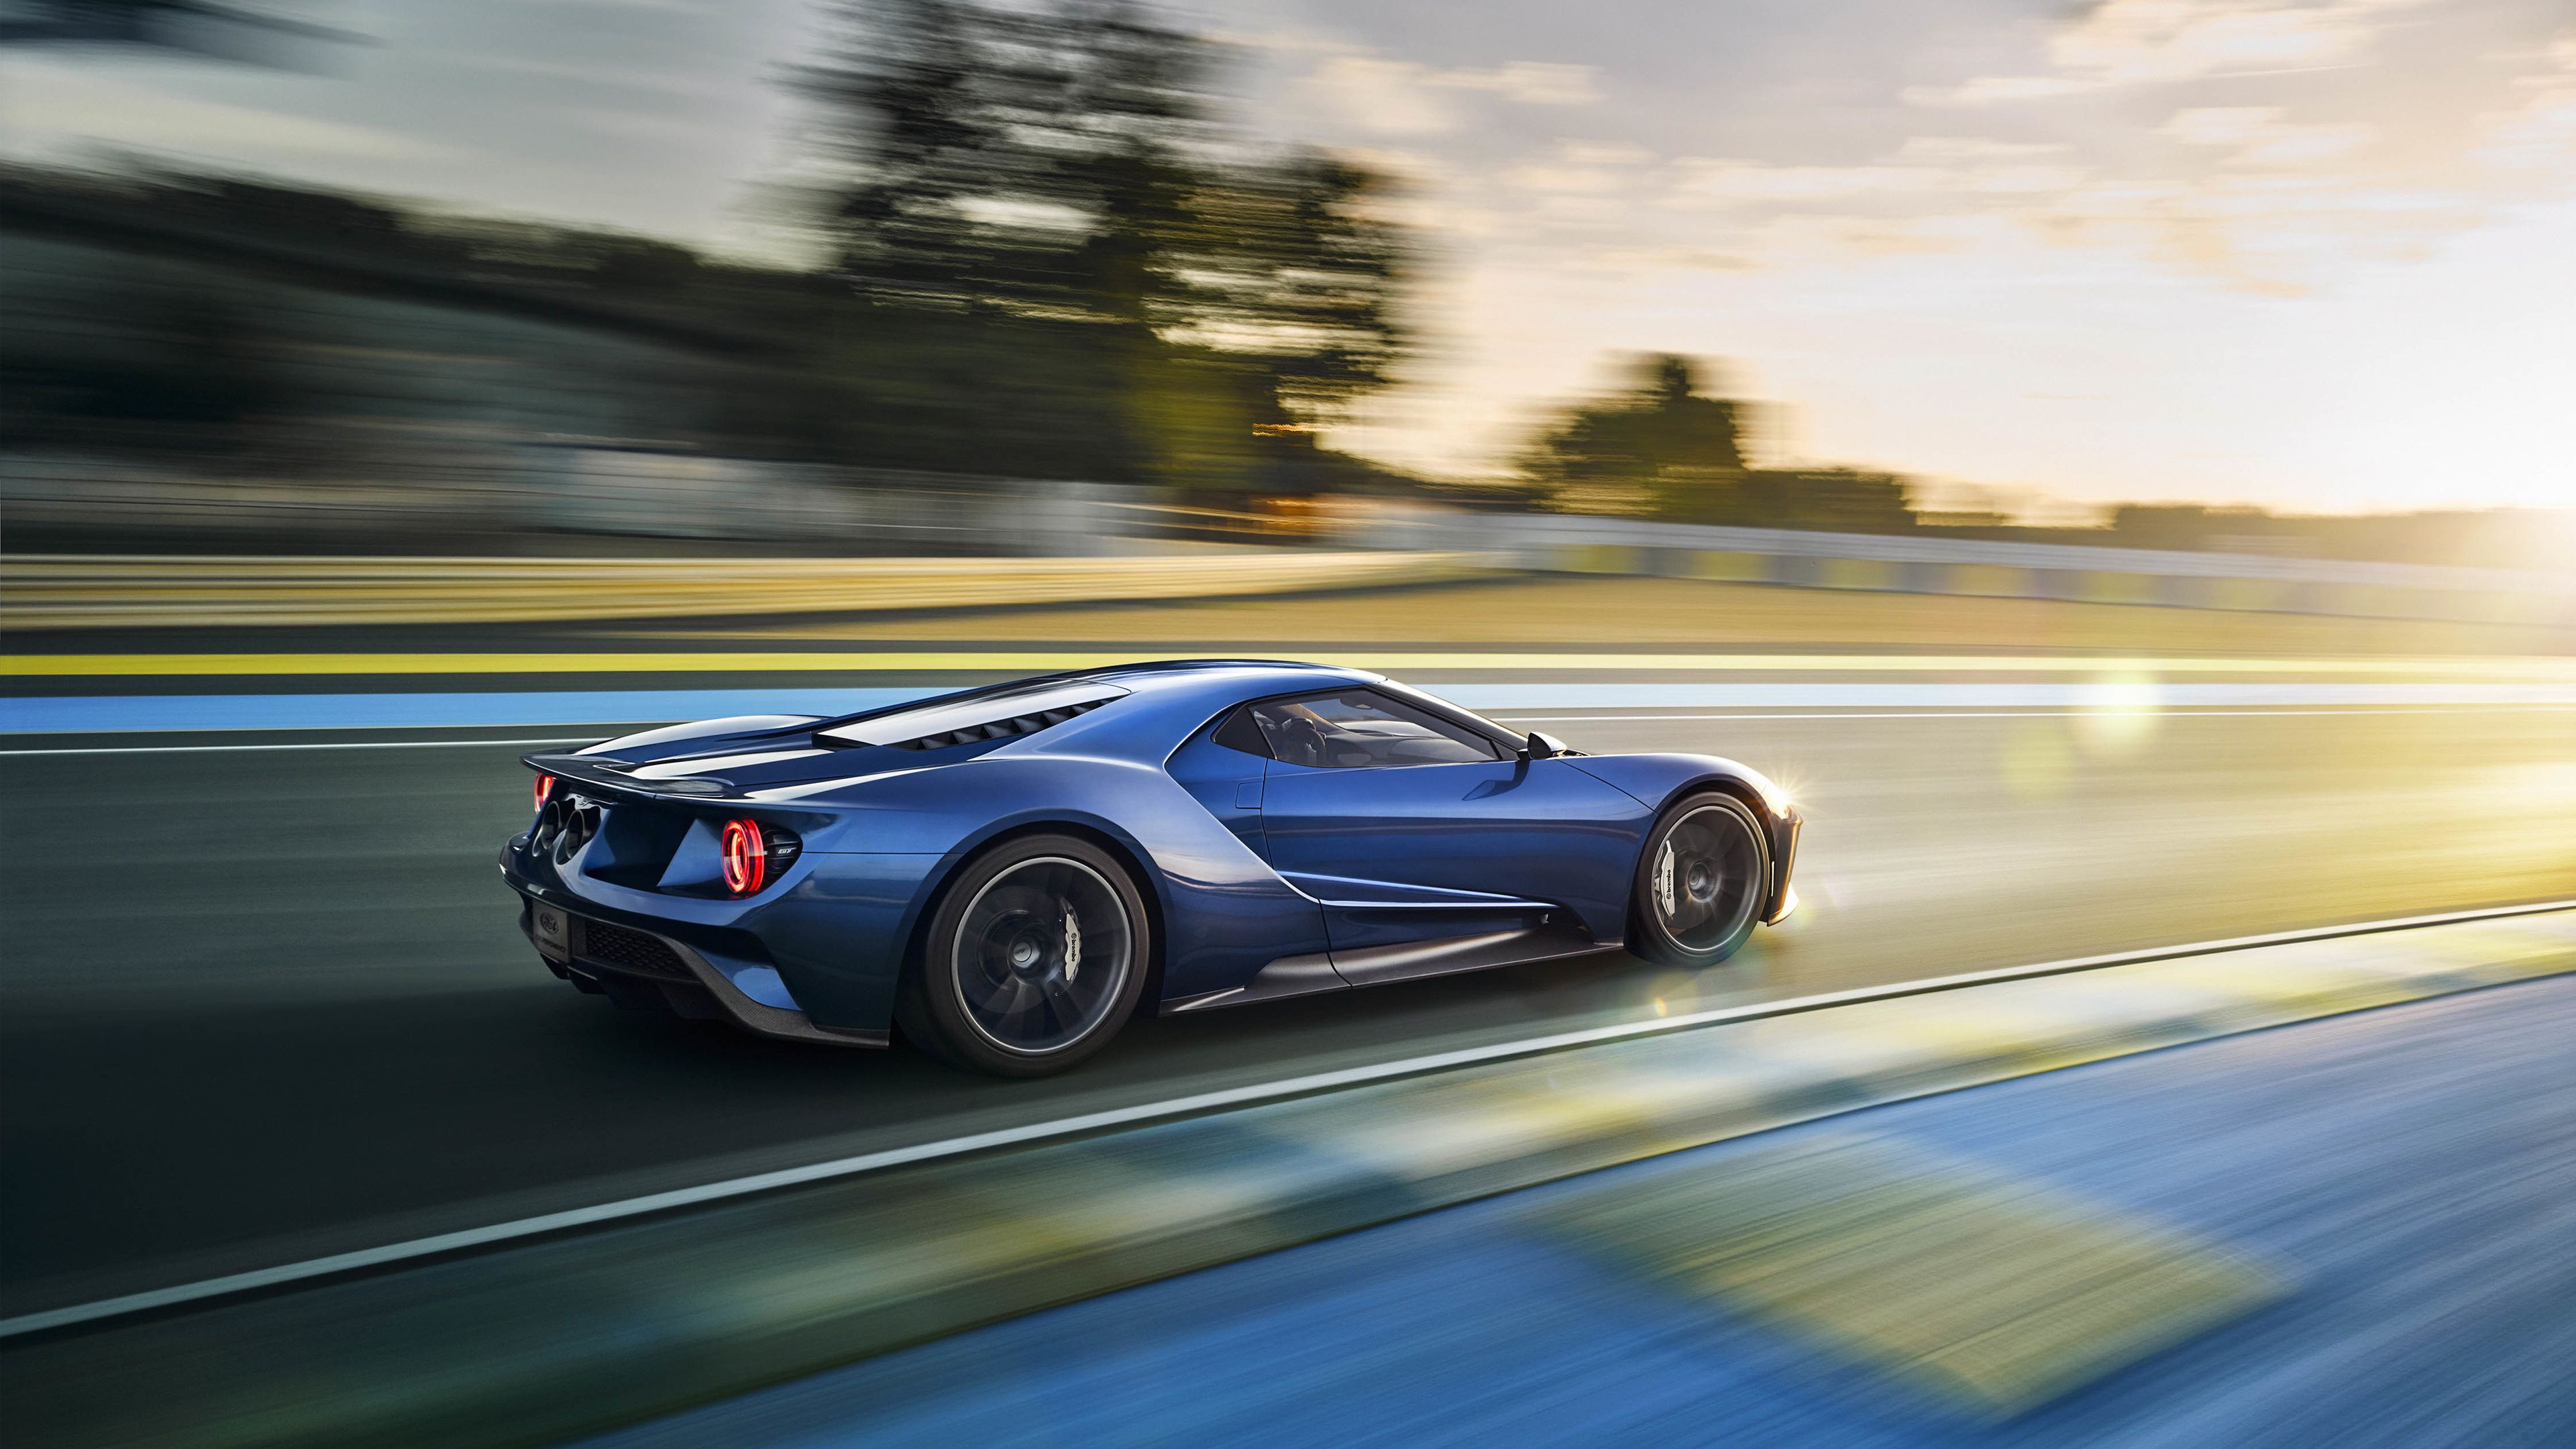 Ford Gt Wallpapers Top Free Ford Gt Backgrounds Wallpaperaccess